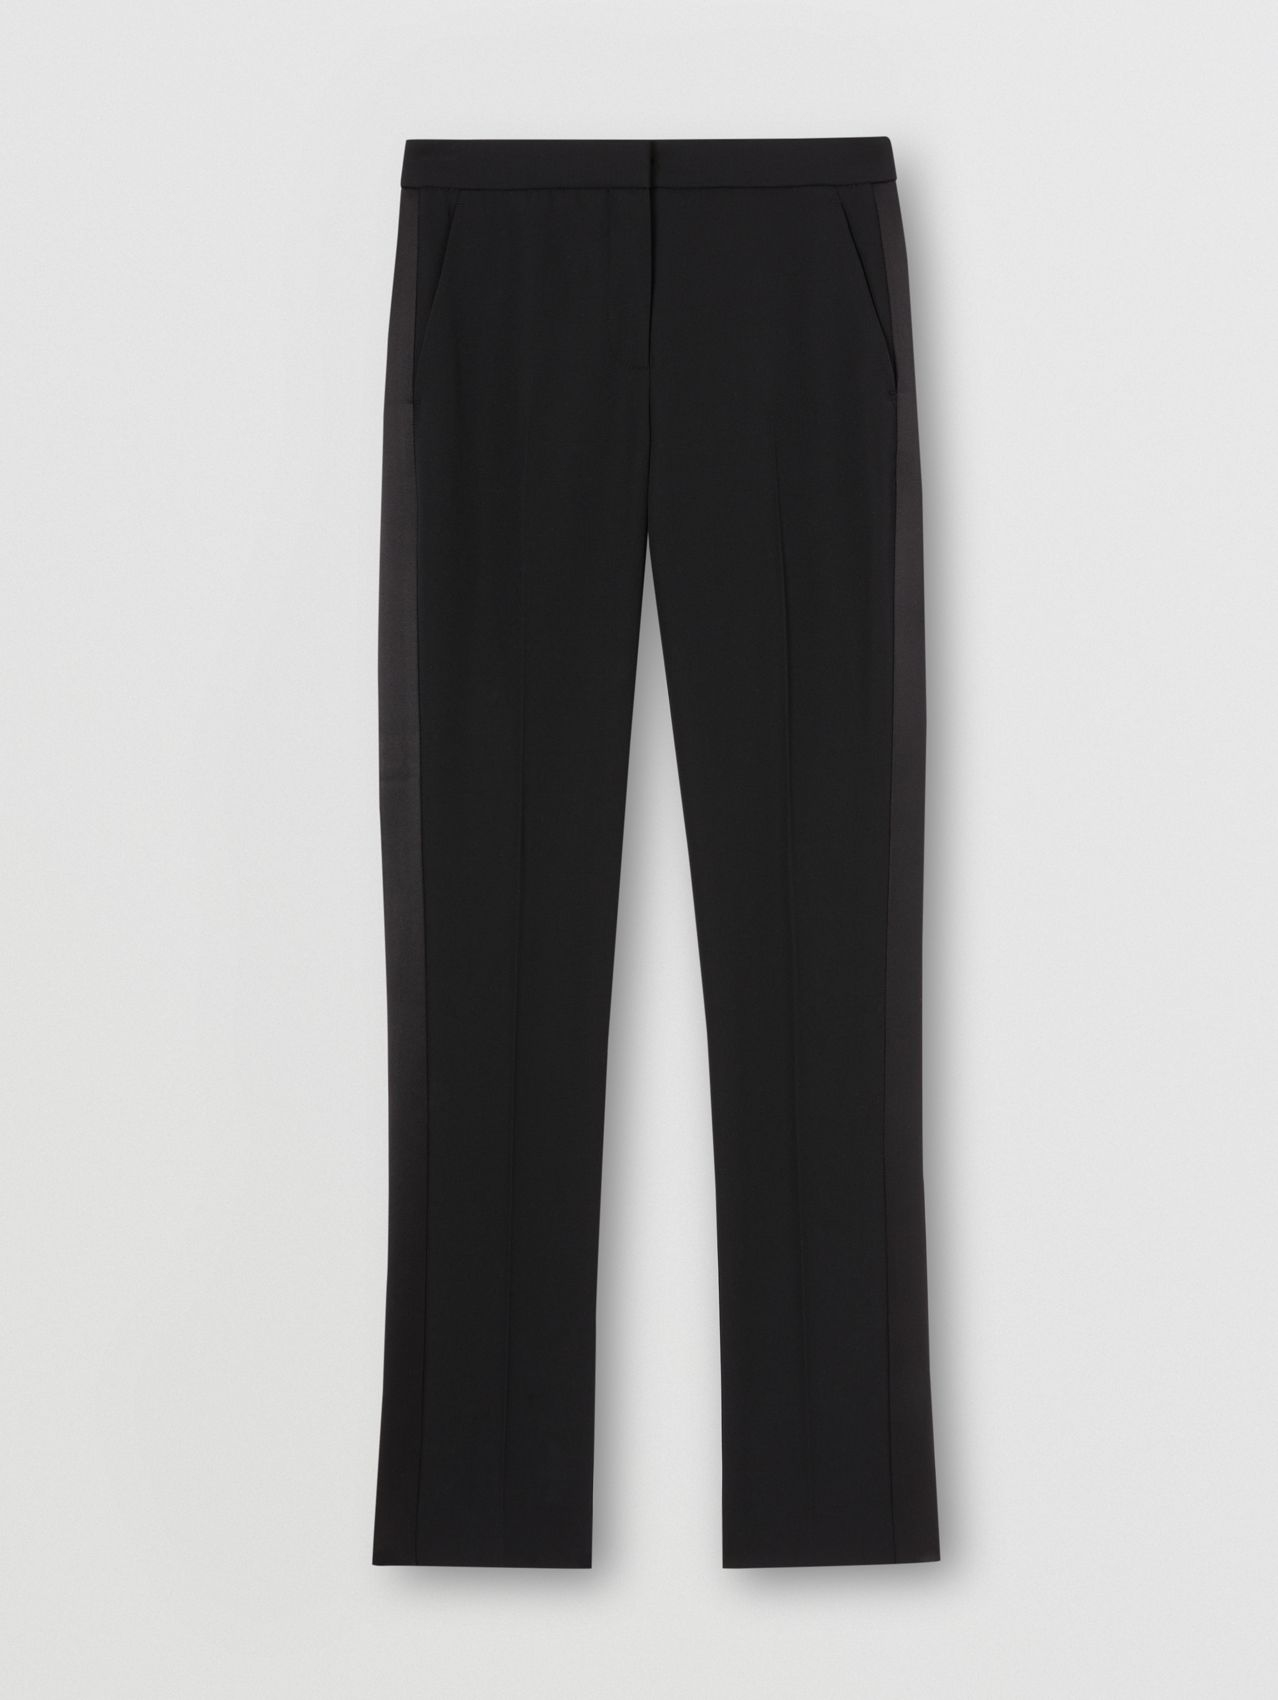 Two-tone Wool and Cotton Tailored Trousers in Black